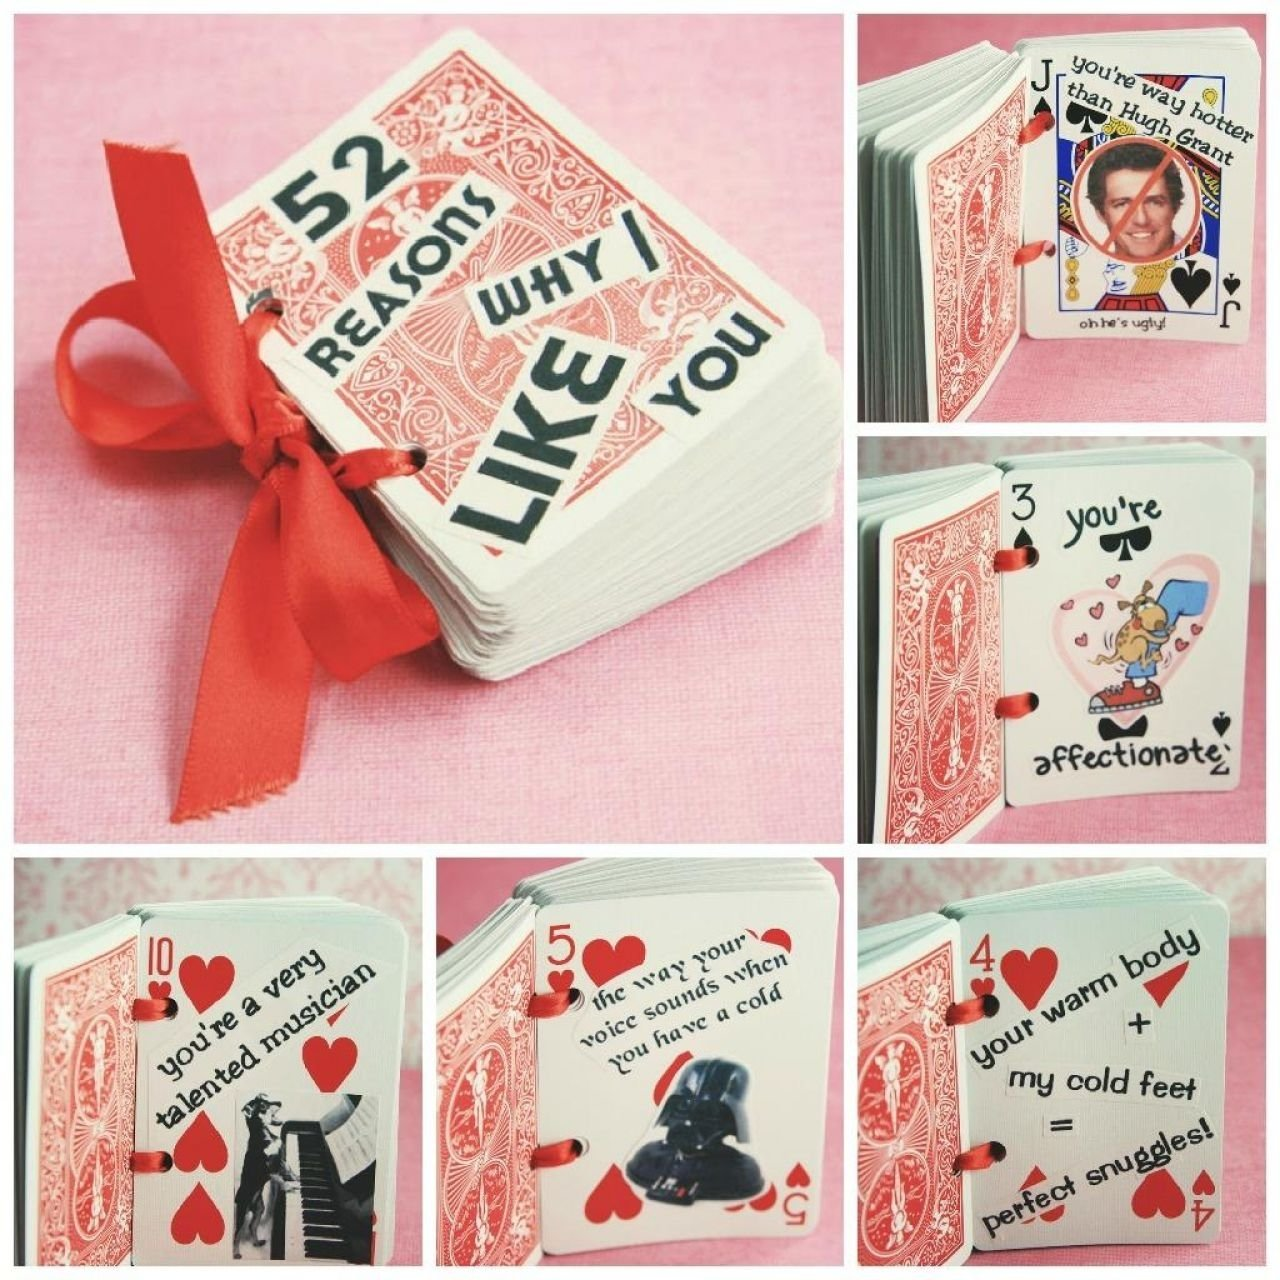 10 Lovely Sweetest Day Gift Ideas For Her 17 last minute handmade valentine gifts for him 2020